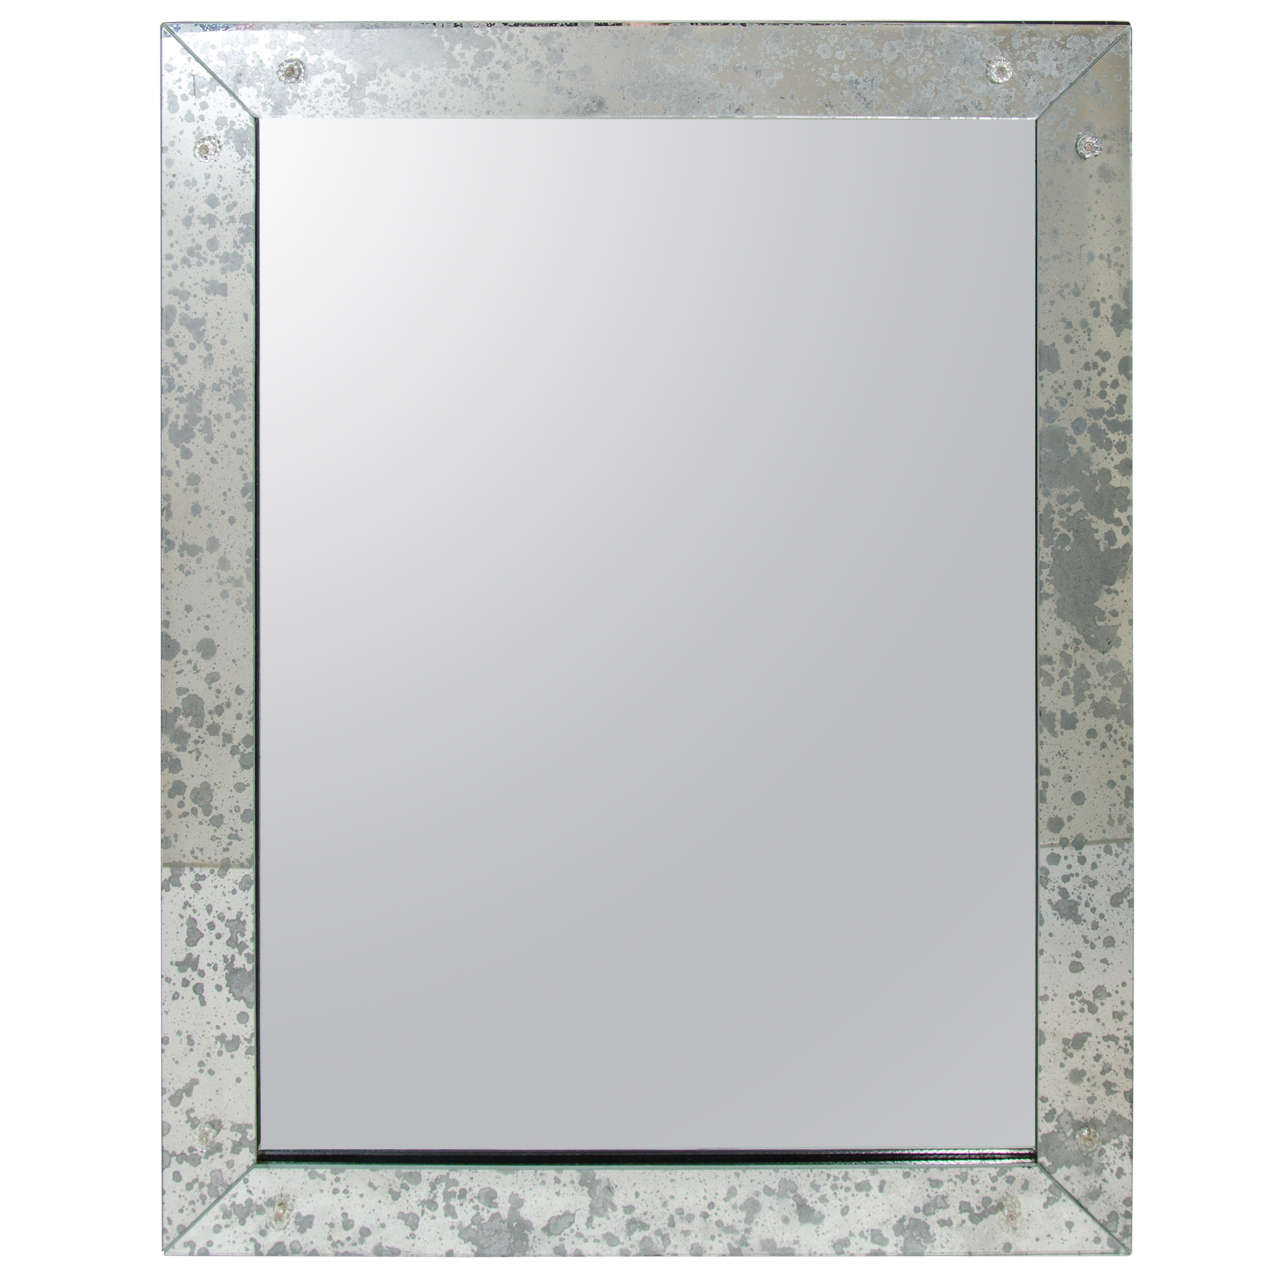 Hollywood Regency Mirror with Antiqued Glass Borders